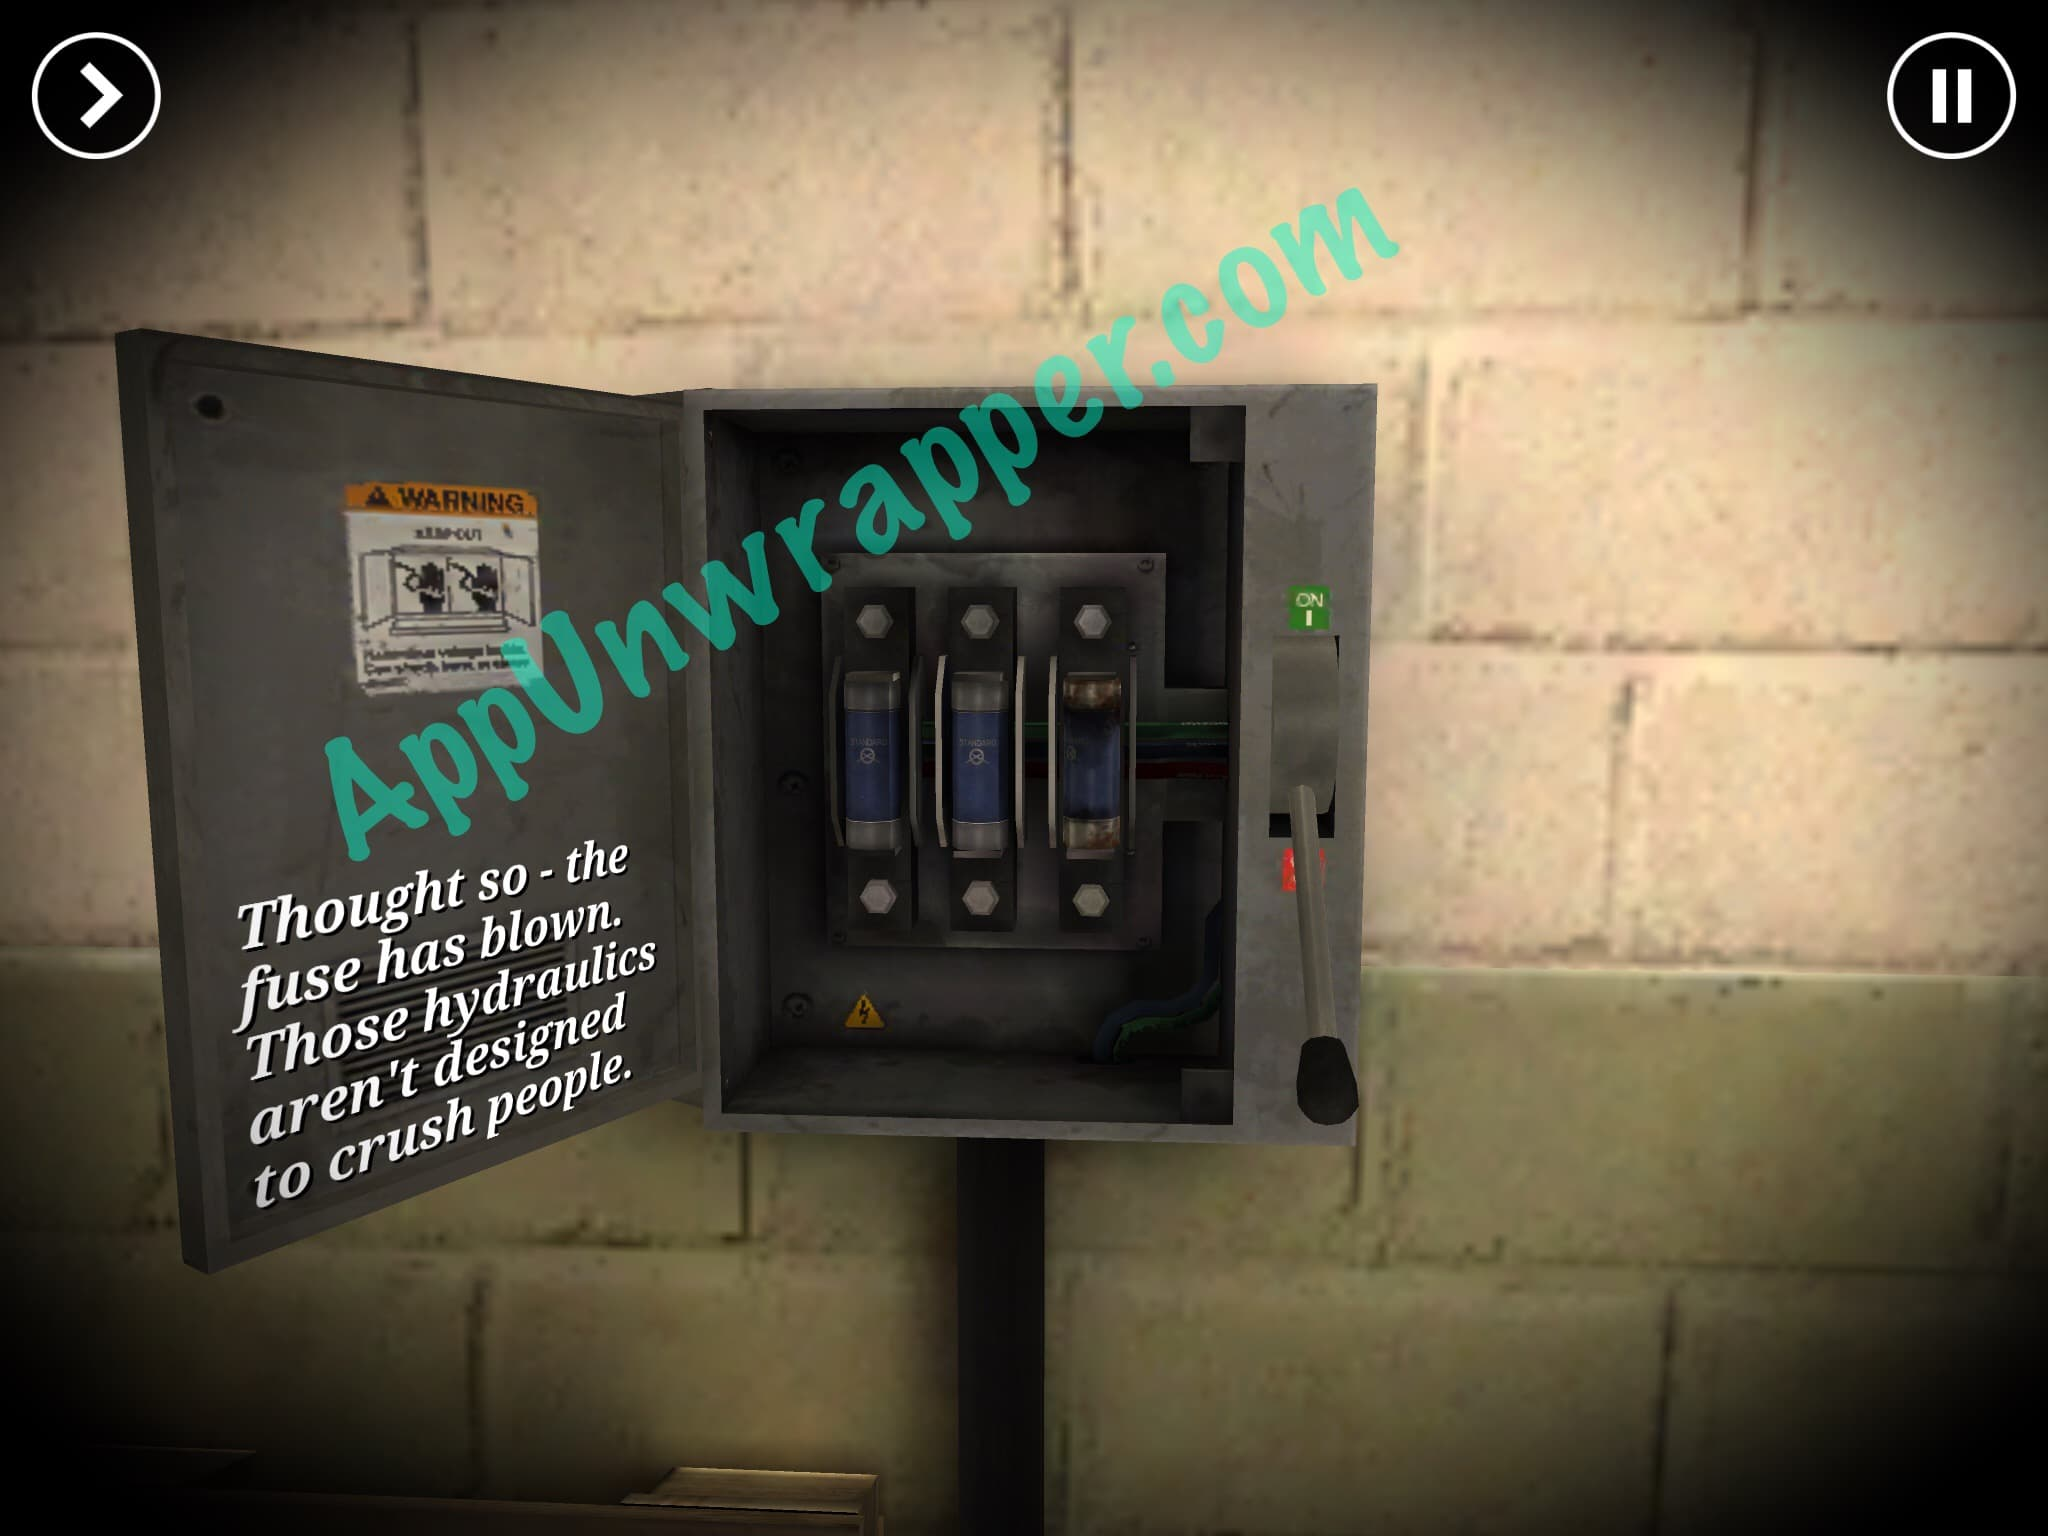 The Trace Murder Mystery Game Walkthrough Guide Appunwrapper Fuse Box Help Desk Leave That Room And Turn To Other Use Screwdriver Open It Up Lever Is Rusted So Lubricant On